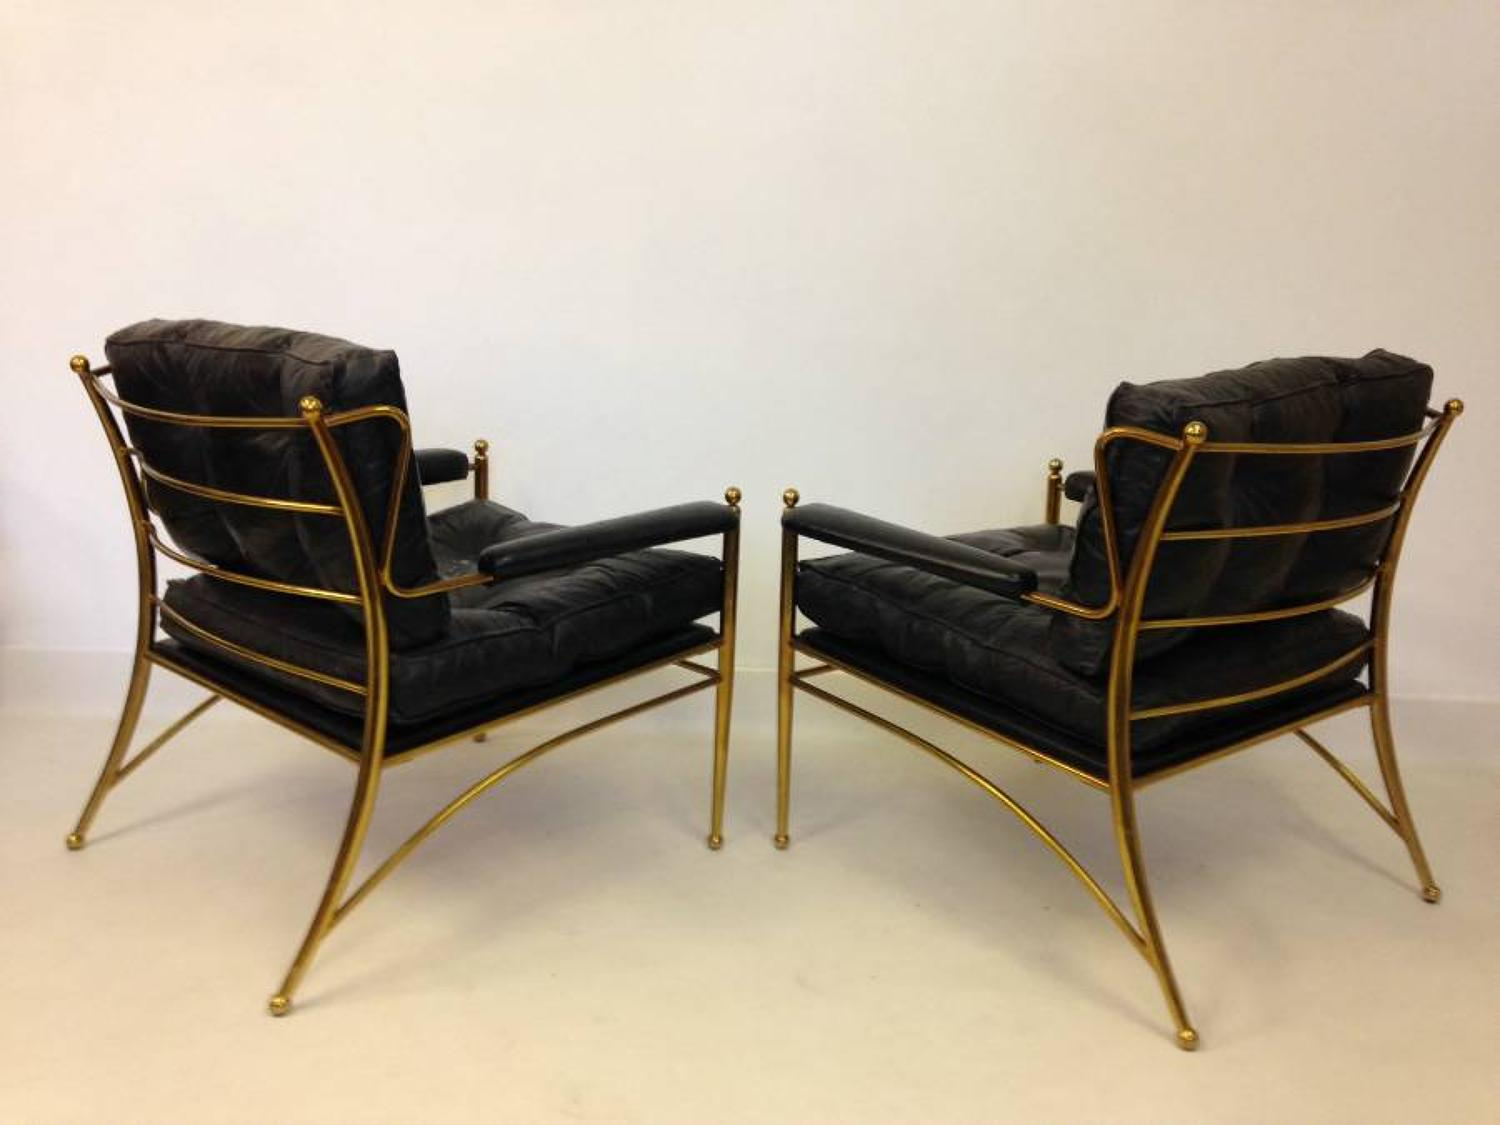 A pair of brass framed and leather armchairs